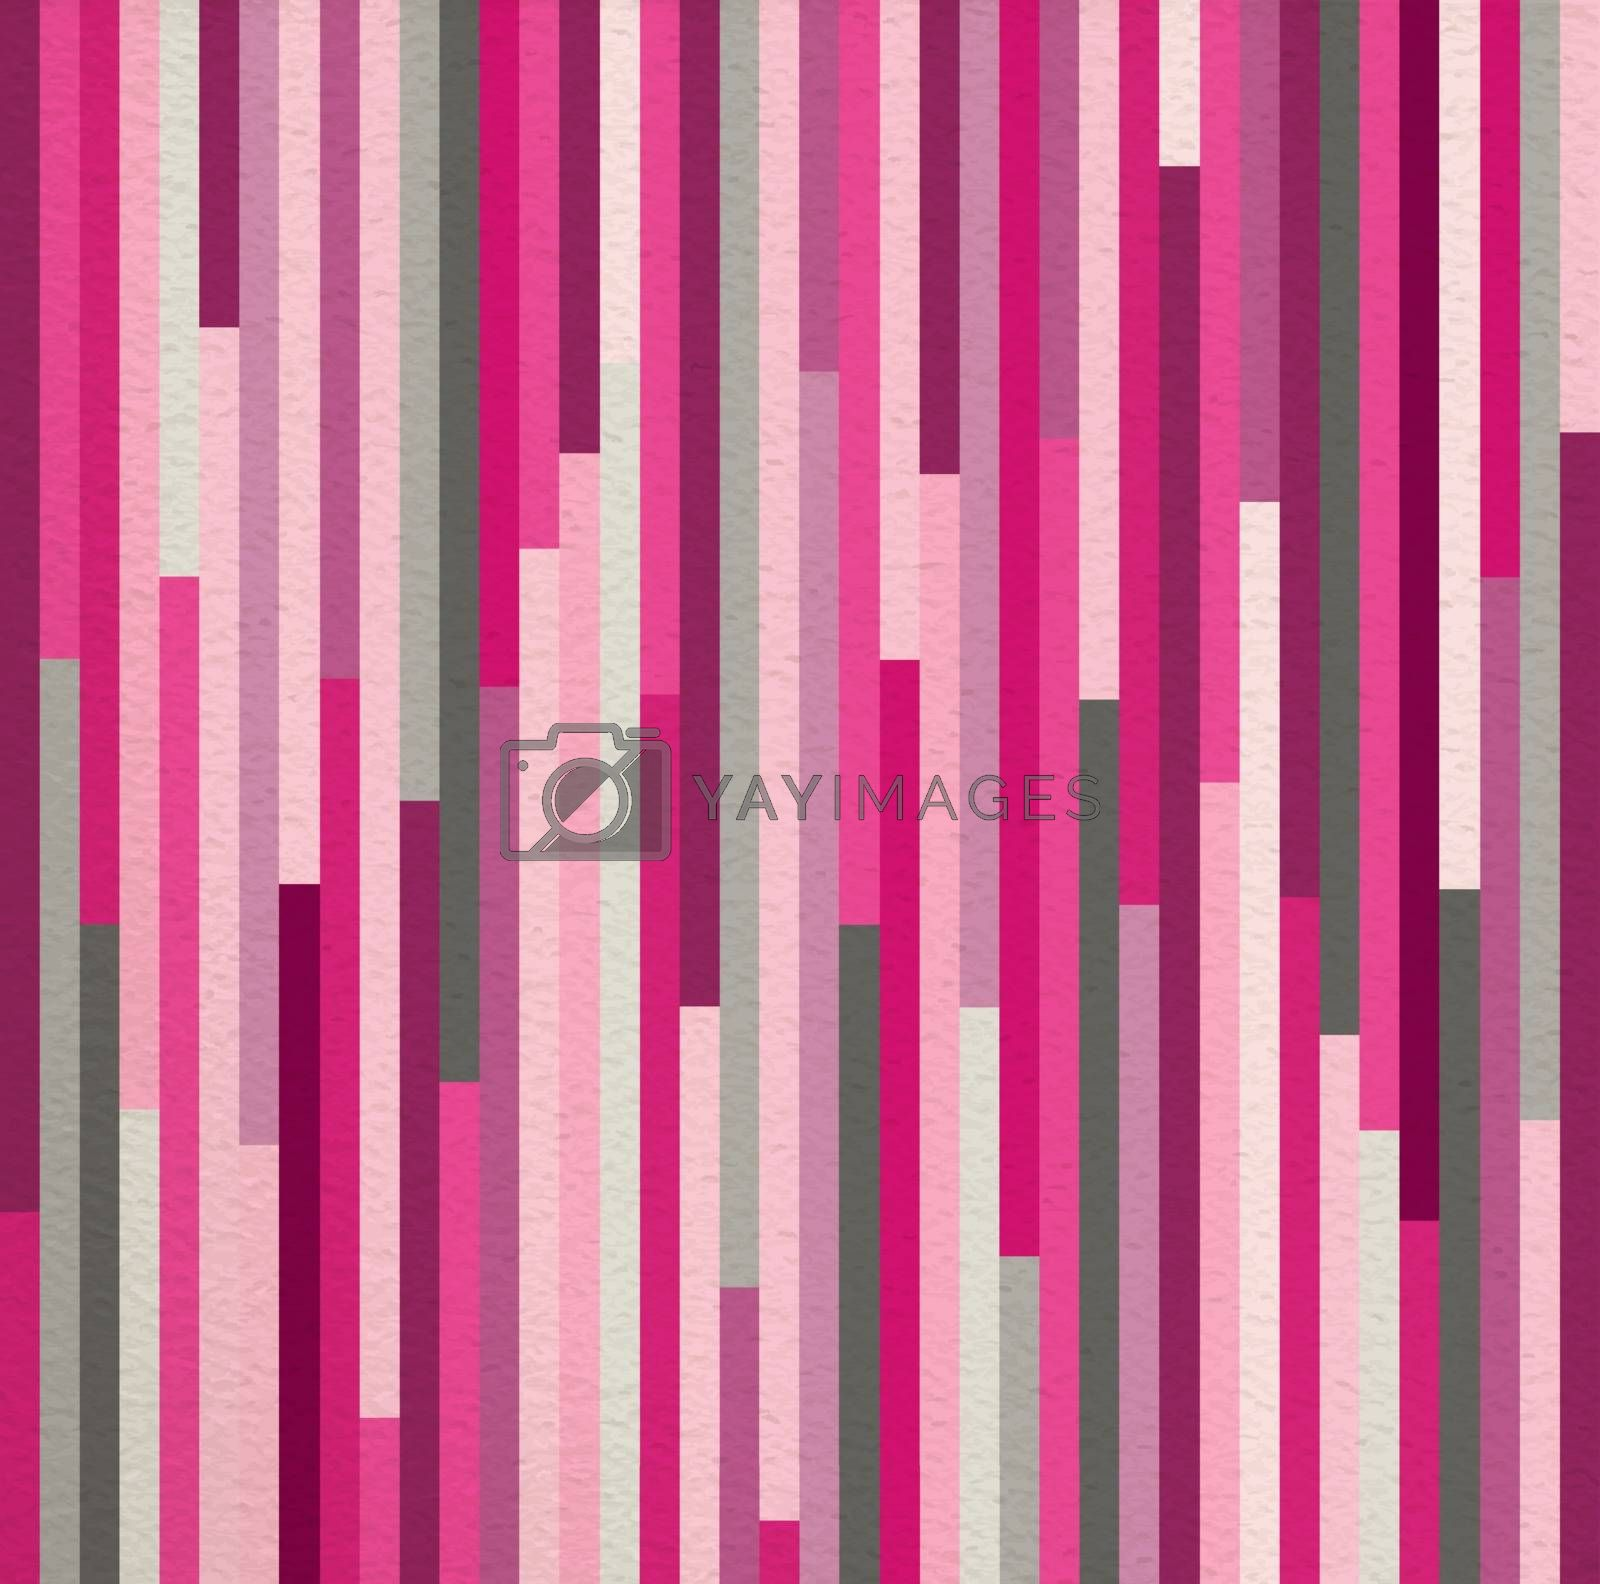 Geometric abstract pink vintage retro seamless pattern striped background. Ideal for fabric, wrapping paper, or print. EPS10 vector file.